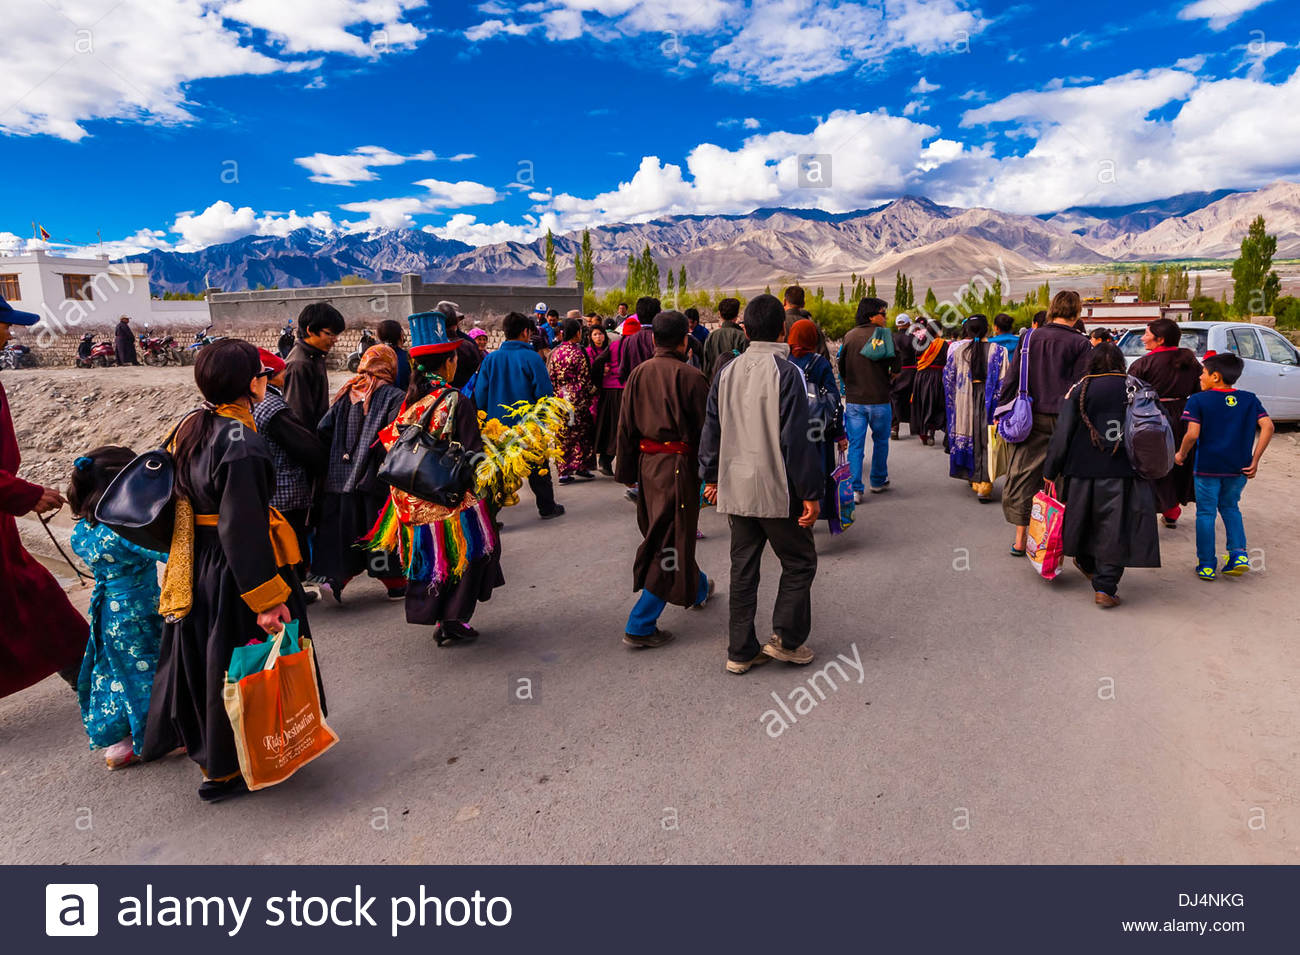 Buddhists walking to attend a teaching by His Holiness the 14th Dalai Lama at Choglamsar, Ladakh, Jammu and Kashmir Stock Photo